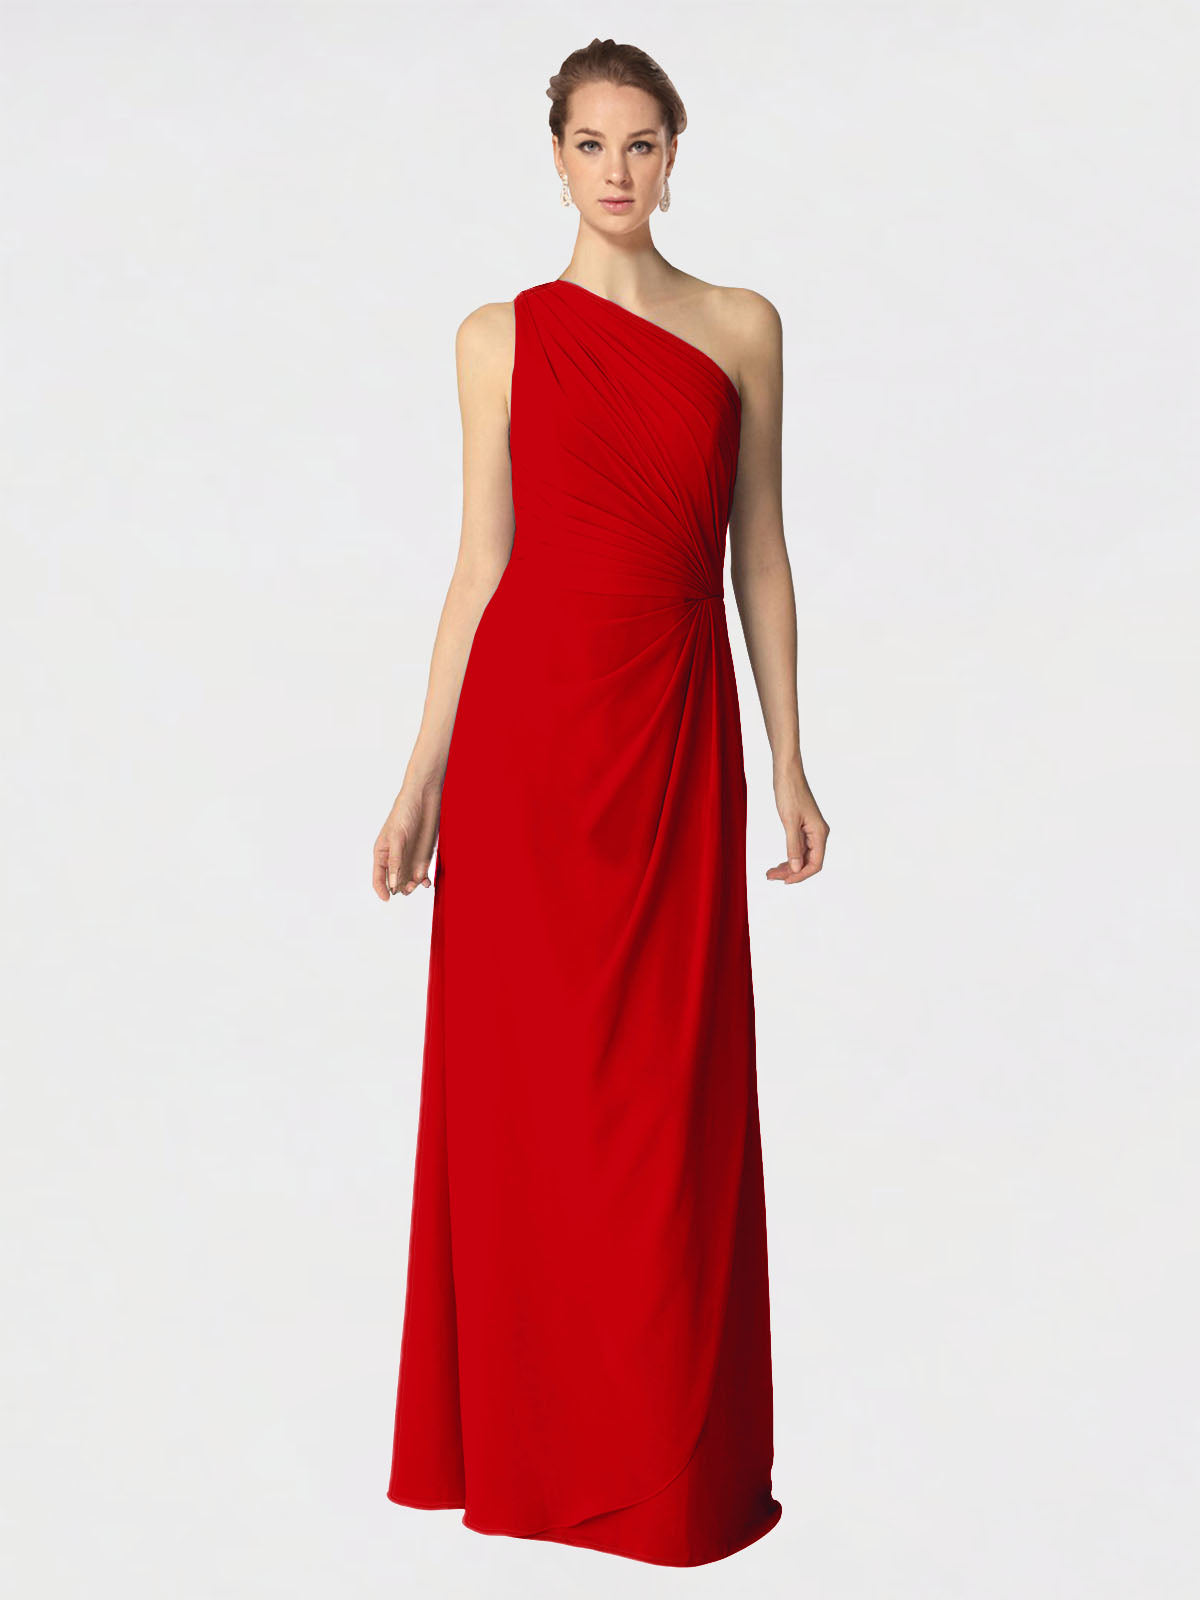 Long A-Line One Shoulder Sleeveless Dark Red Chiffon Bridesmaid Dress Aurora